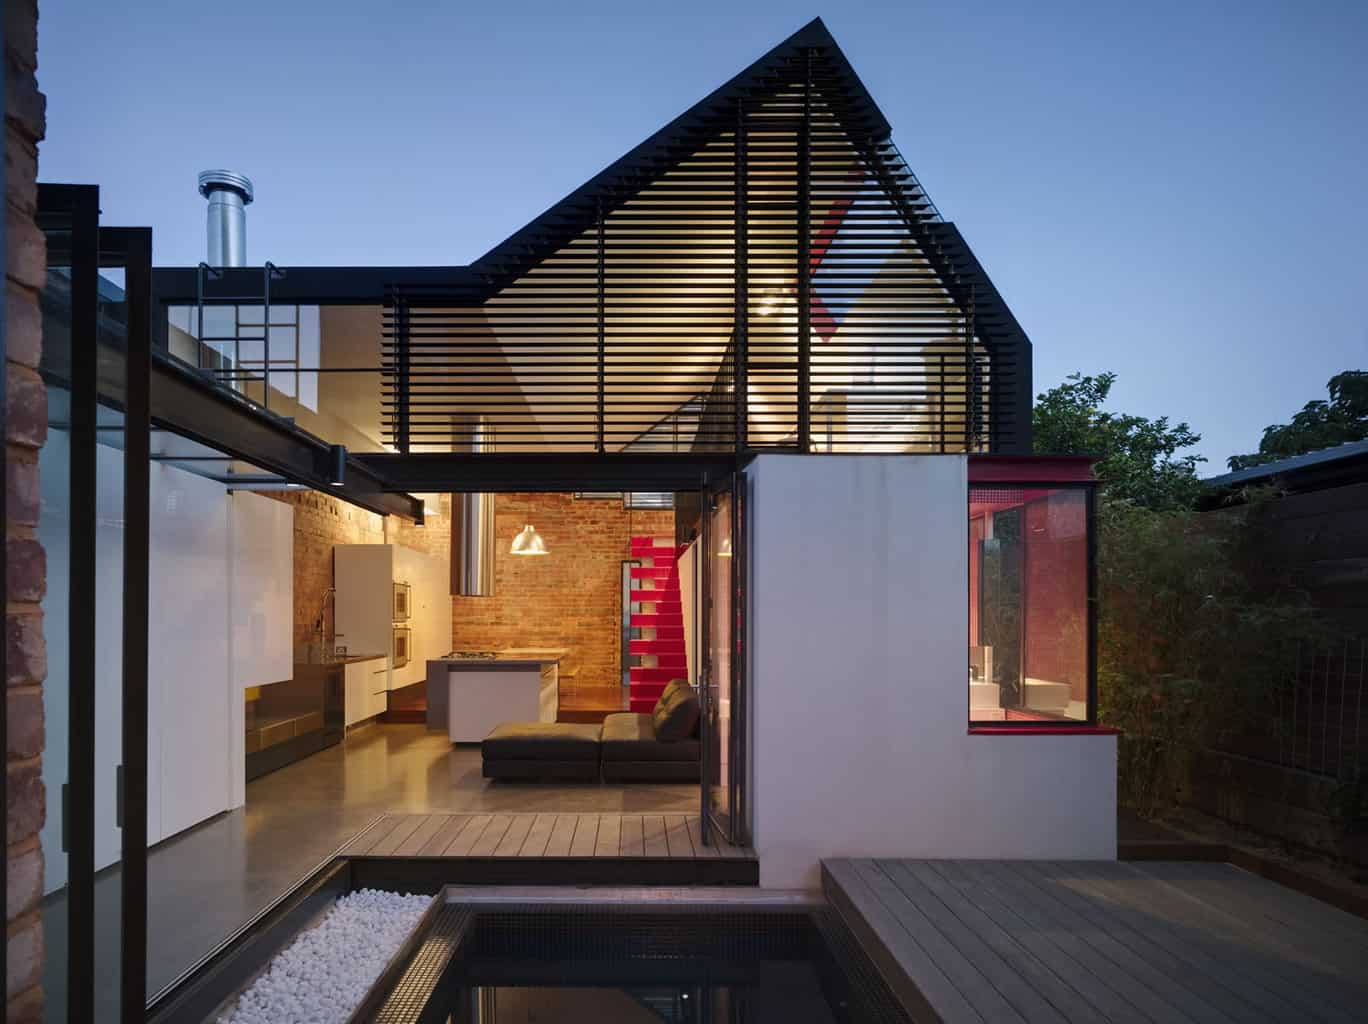 Creative architecture breathes new life into Victorian terrace